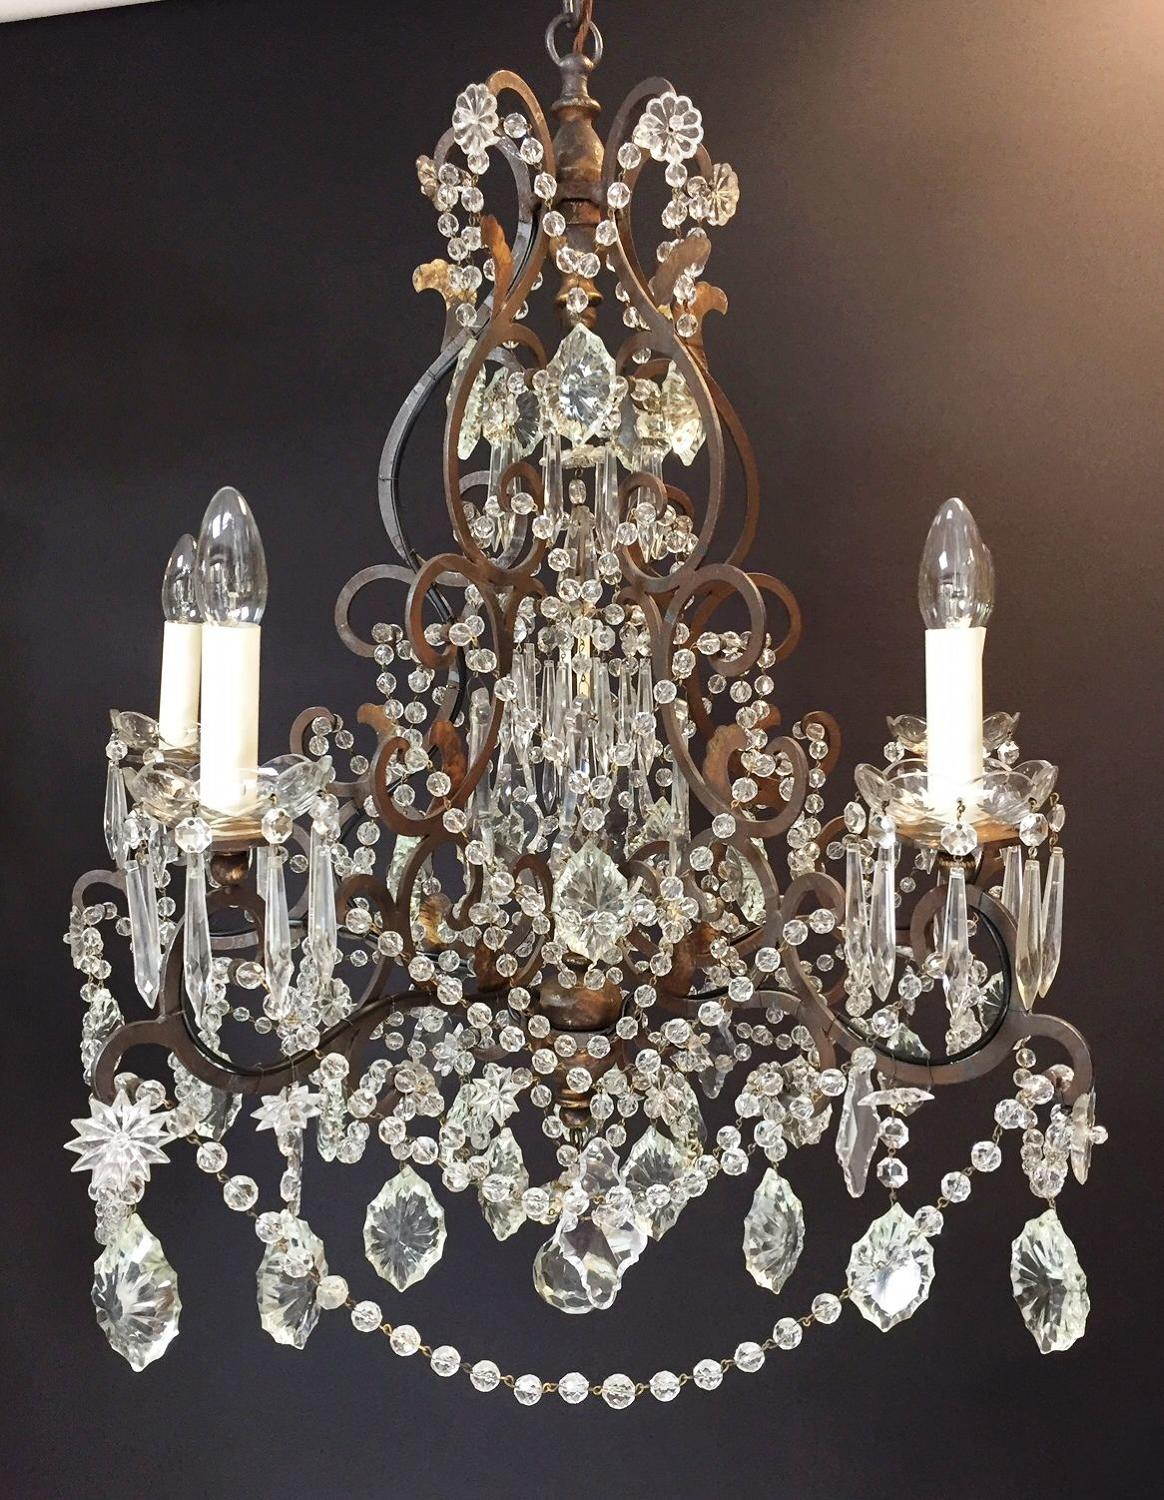 An Italian 18th century style chandelier